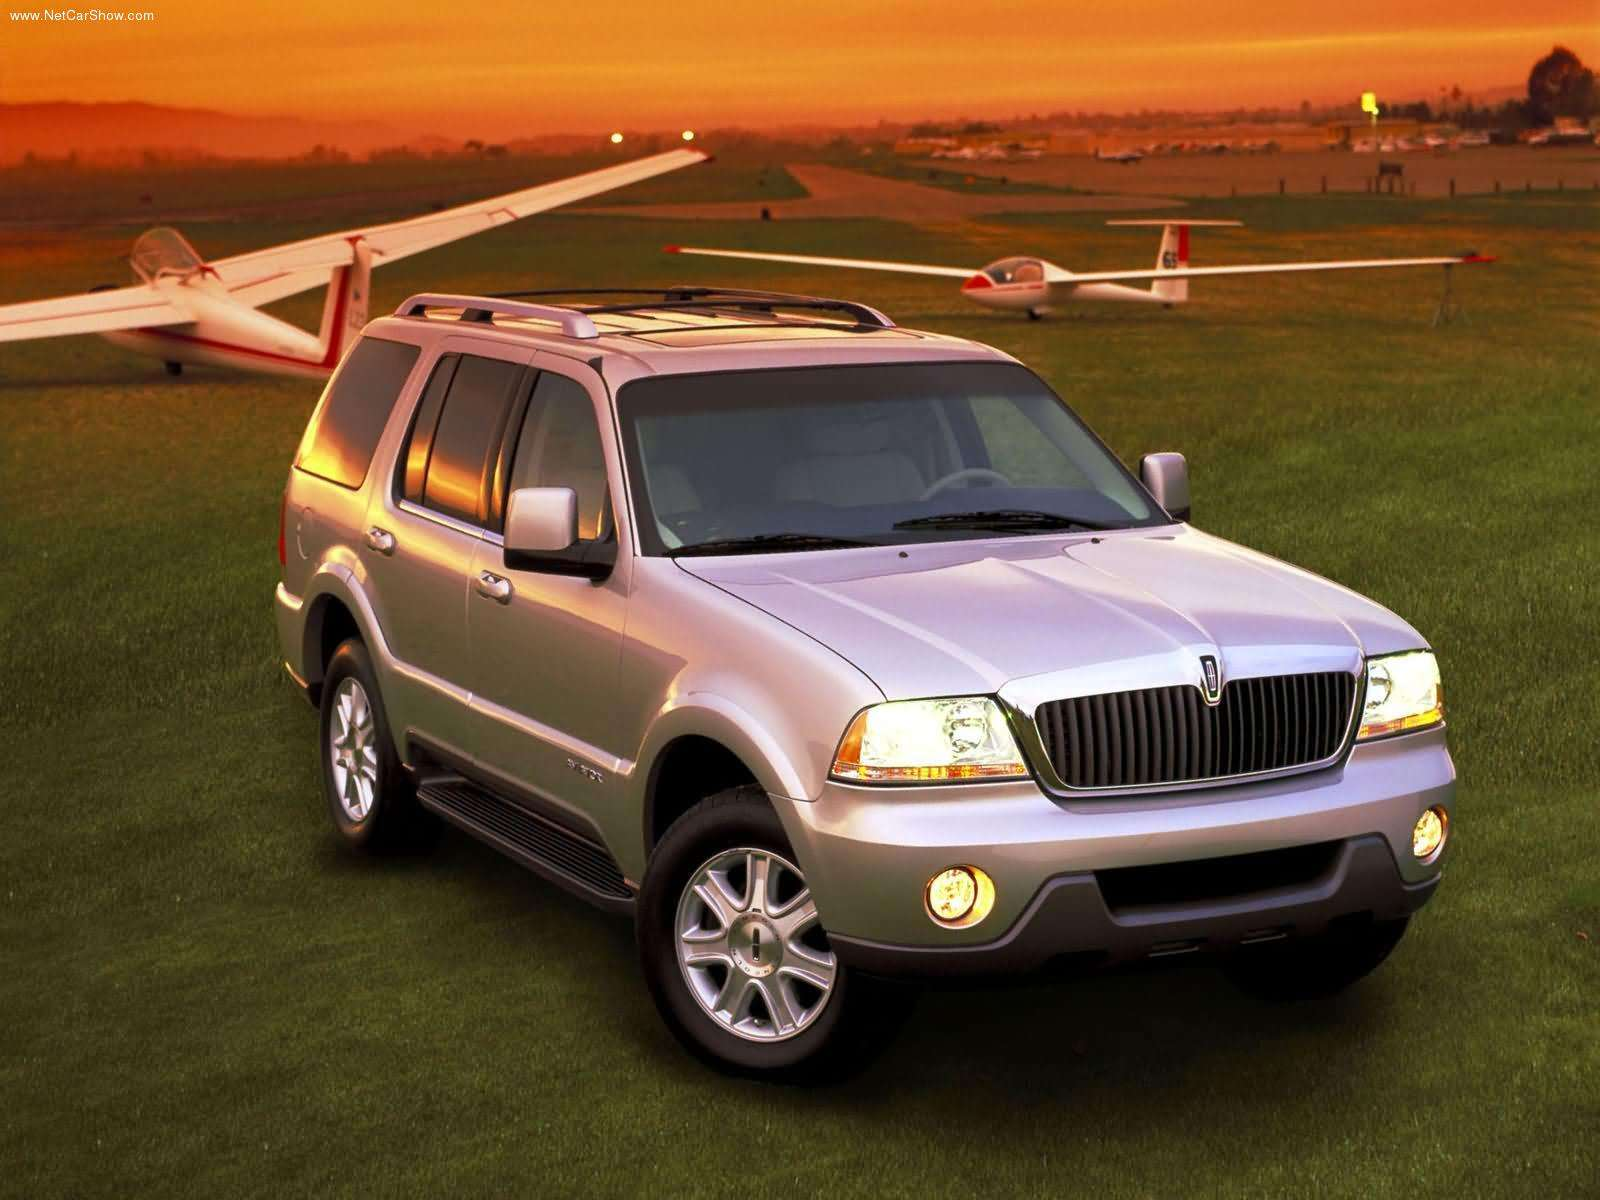 space diagram 2005 jeep grand cherokee aftermarket radio wiring lincoln aviator trademark hints at a posher 2016 ford explorer - autoevolution